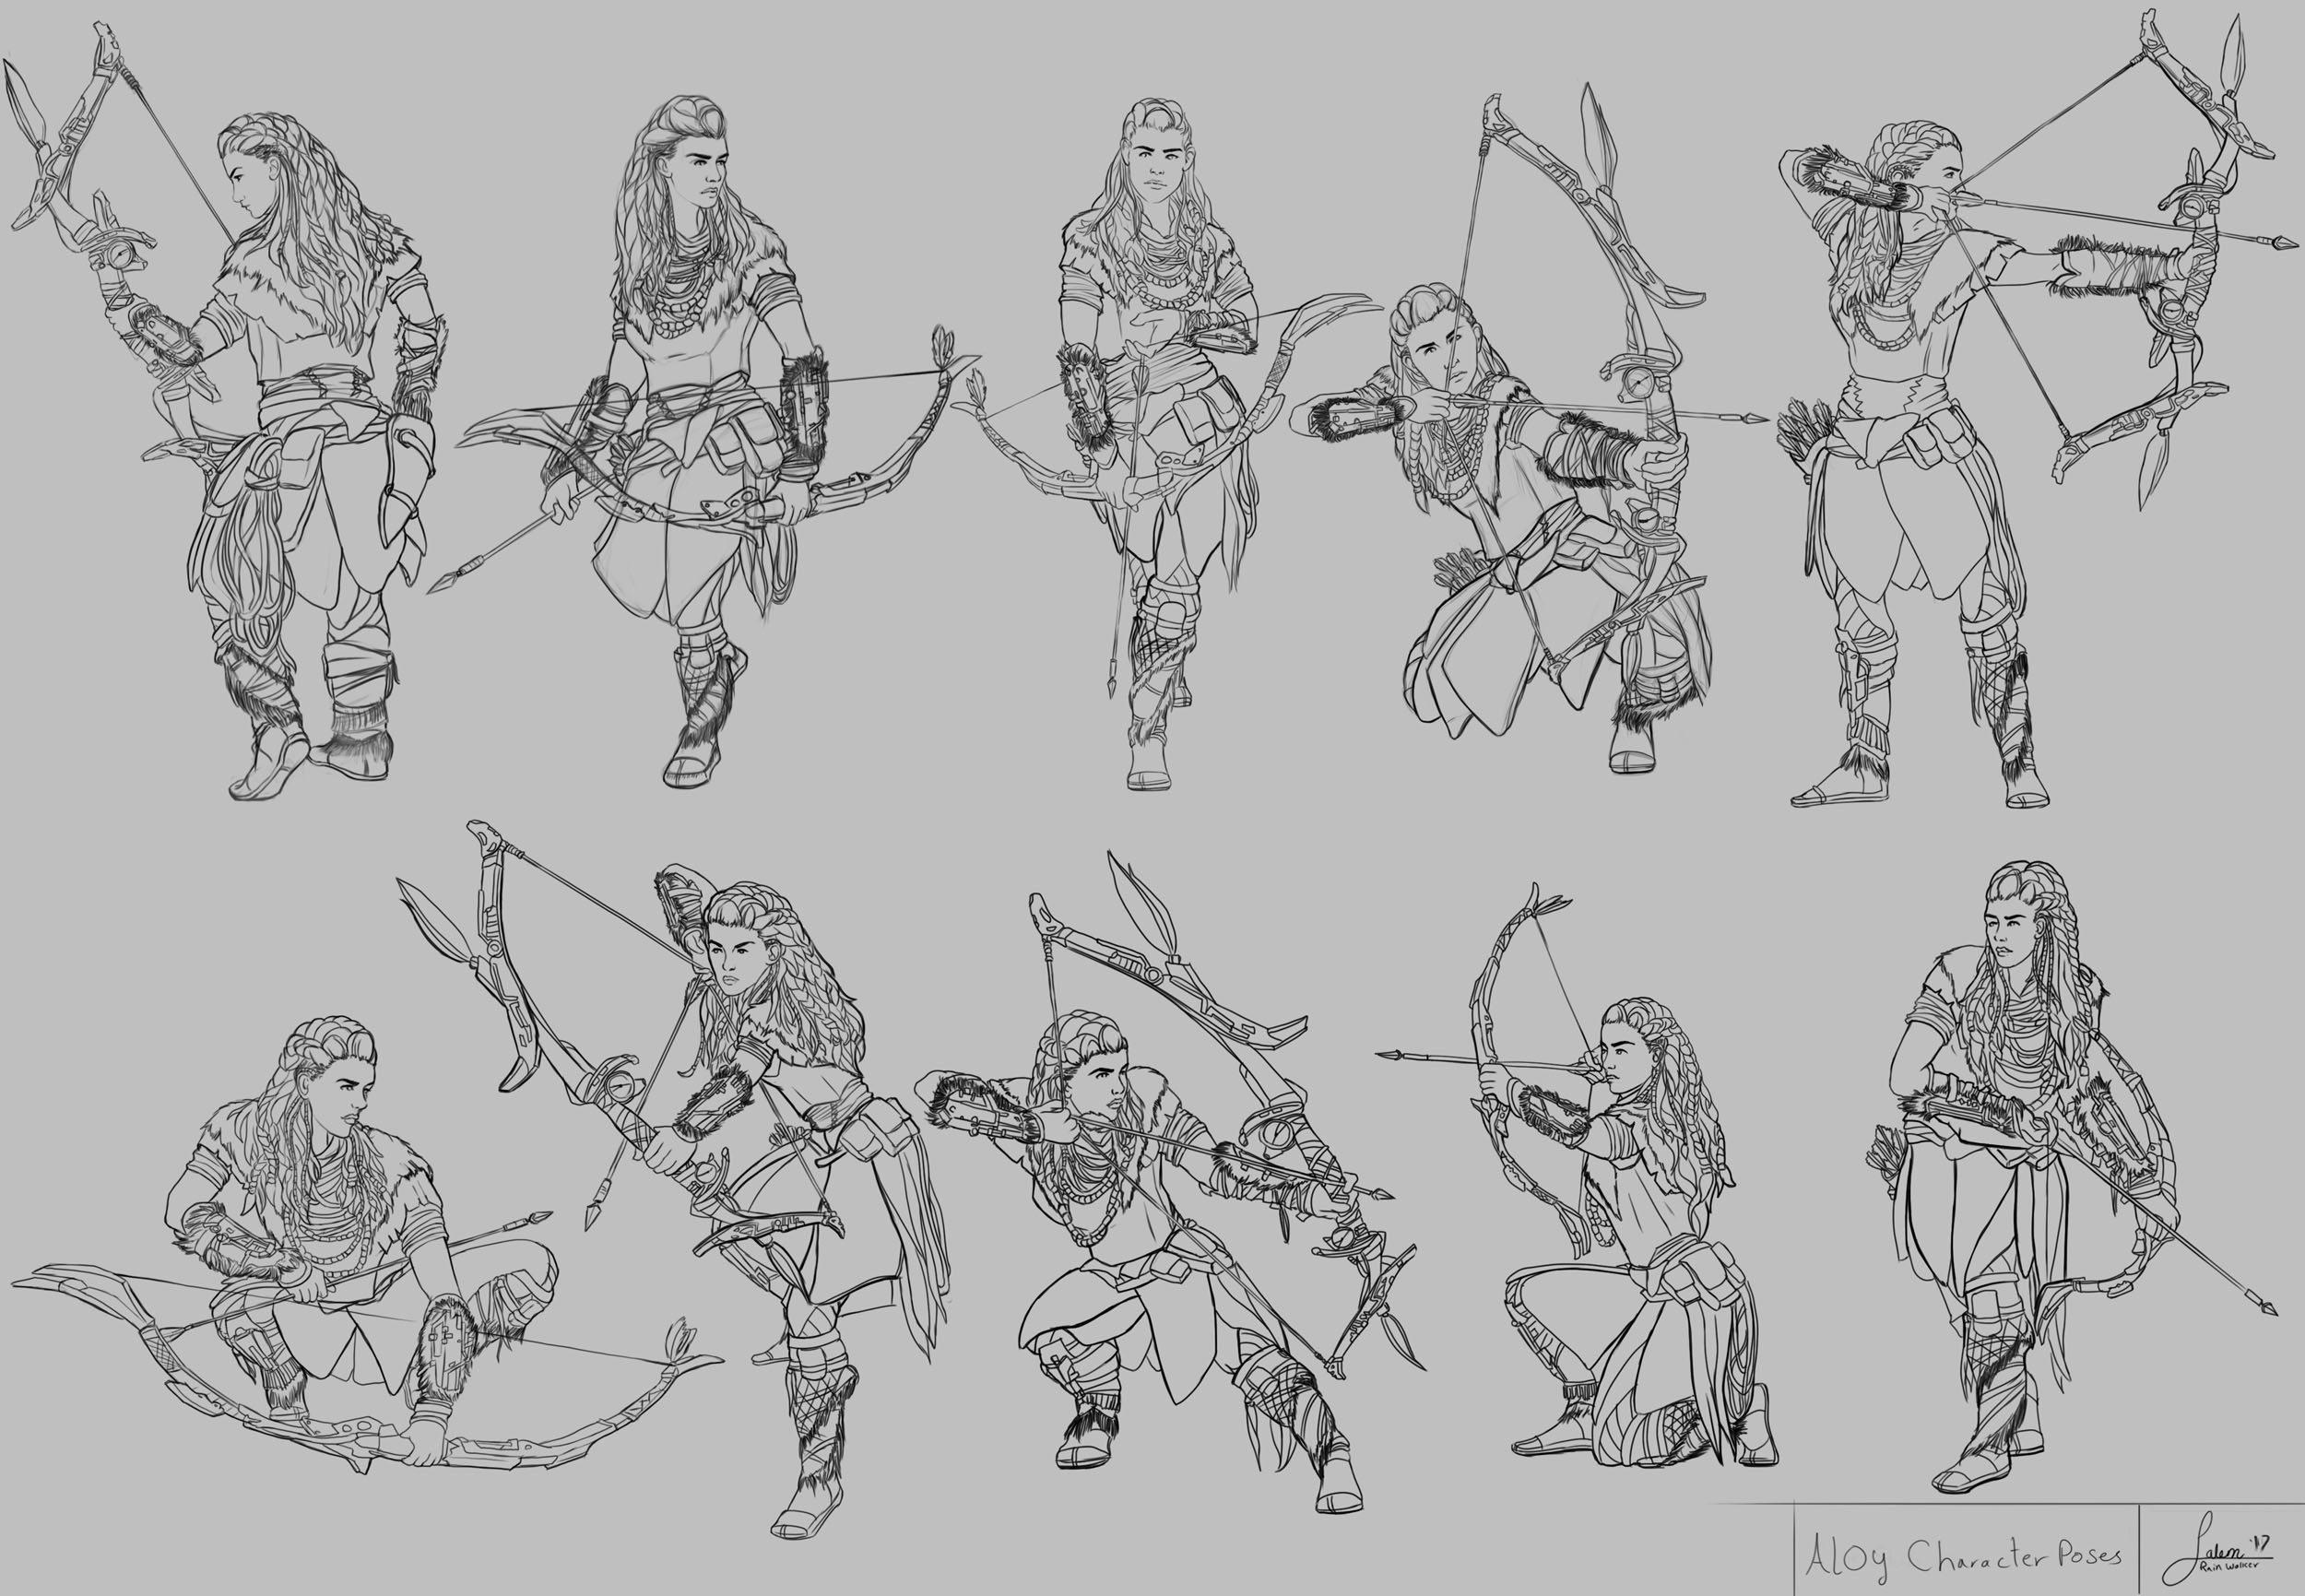 Aloy Character poses (Stage 3)